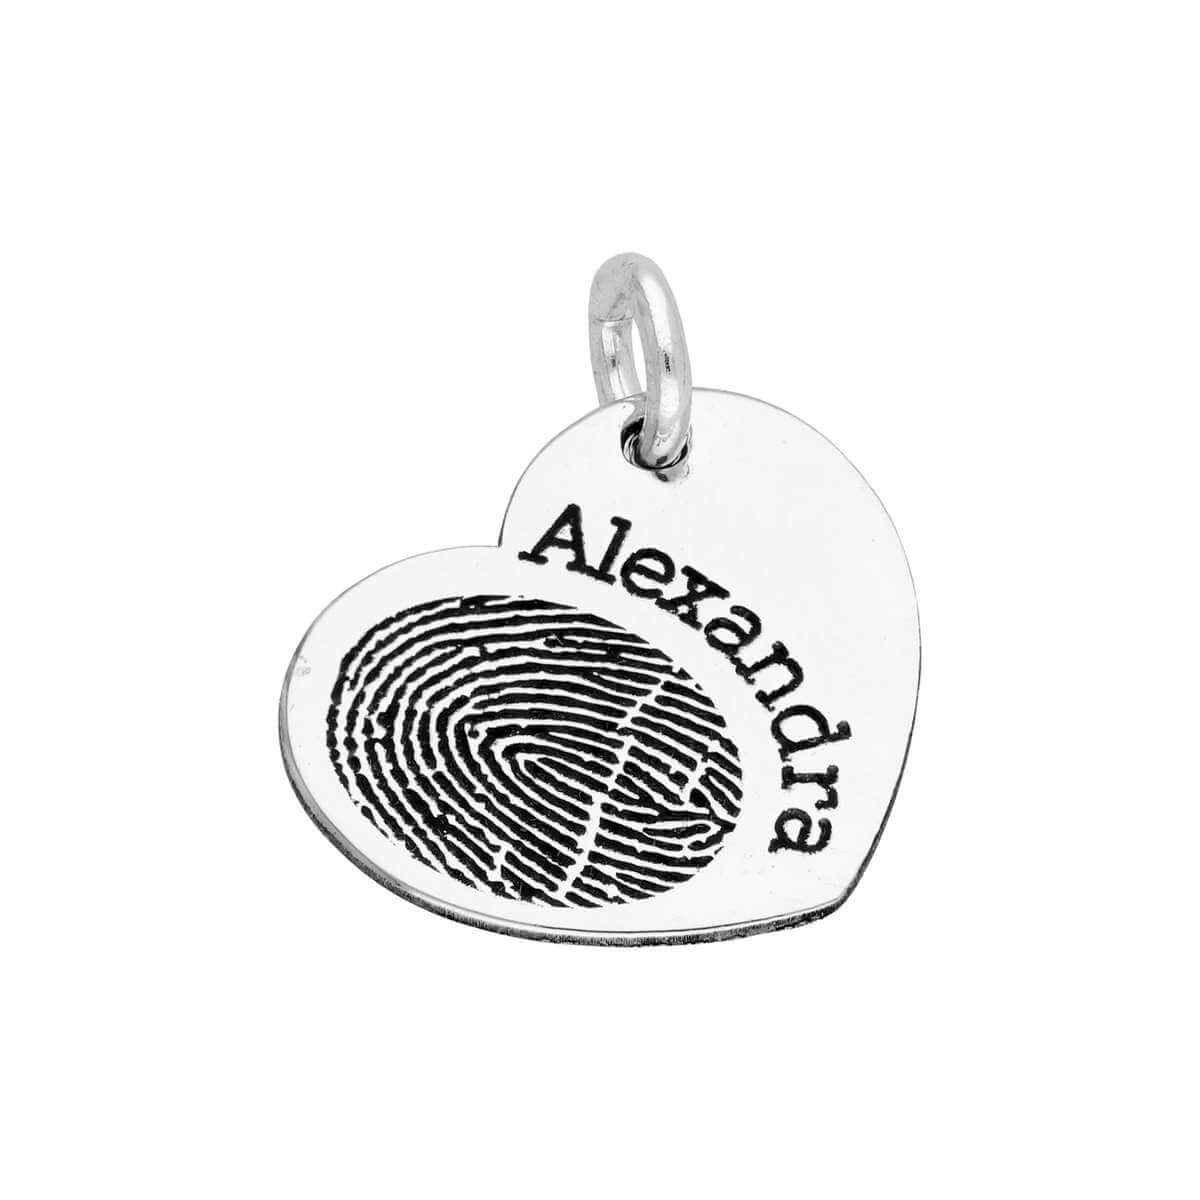 bespoke sterling silver fingerprint heart name charm